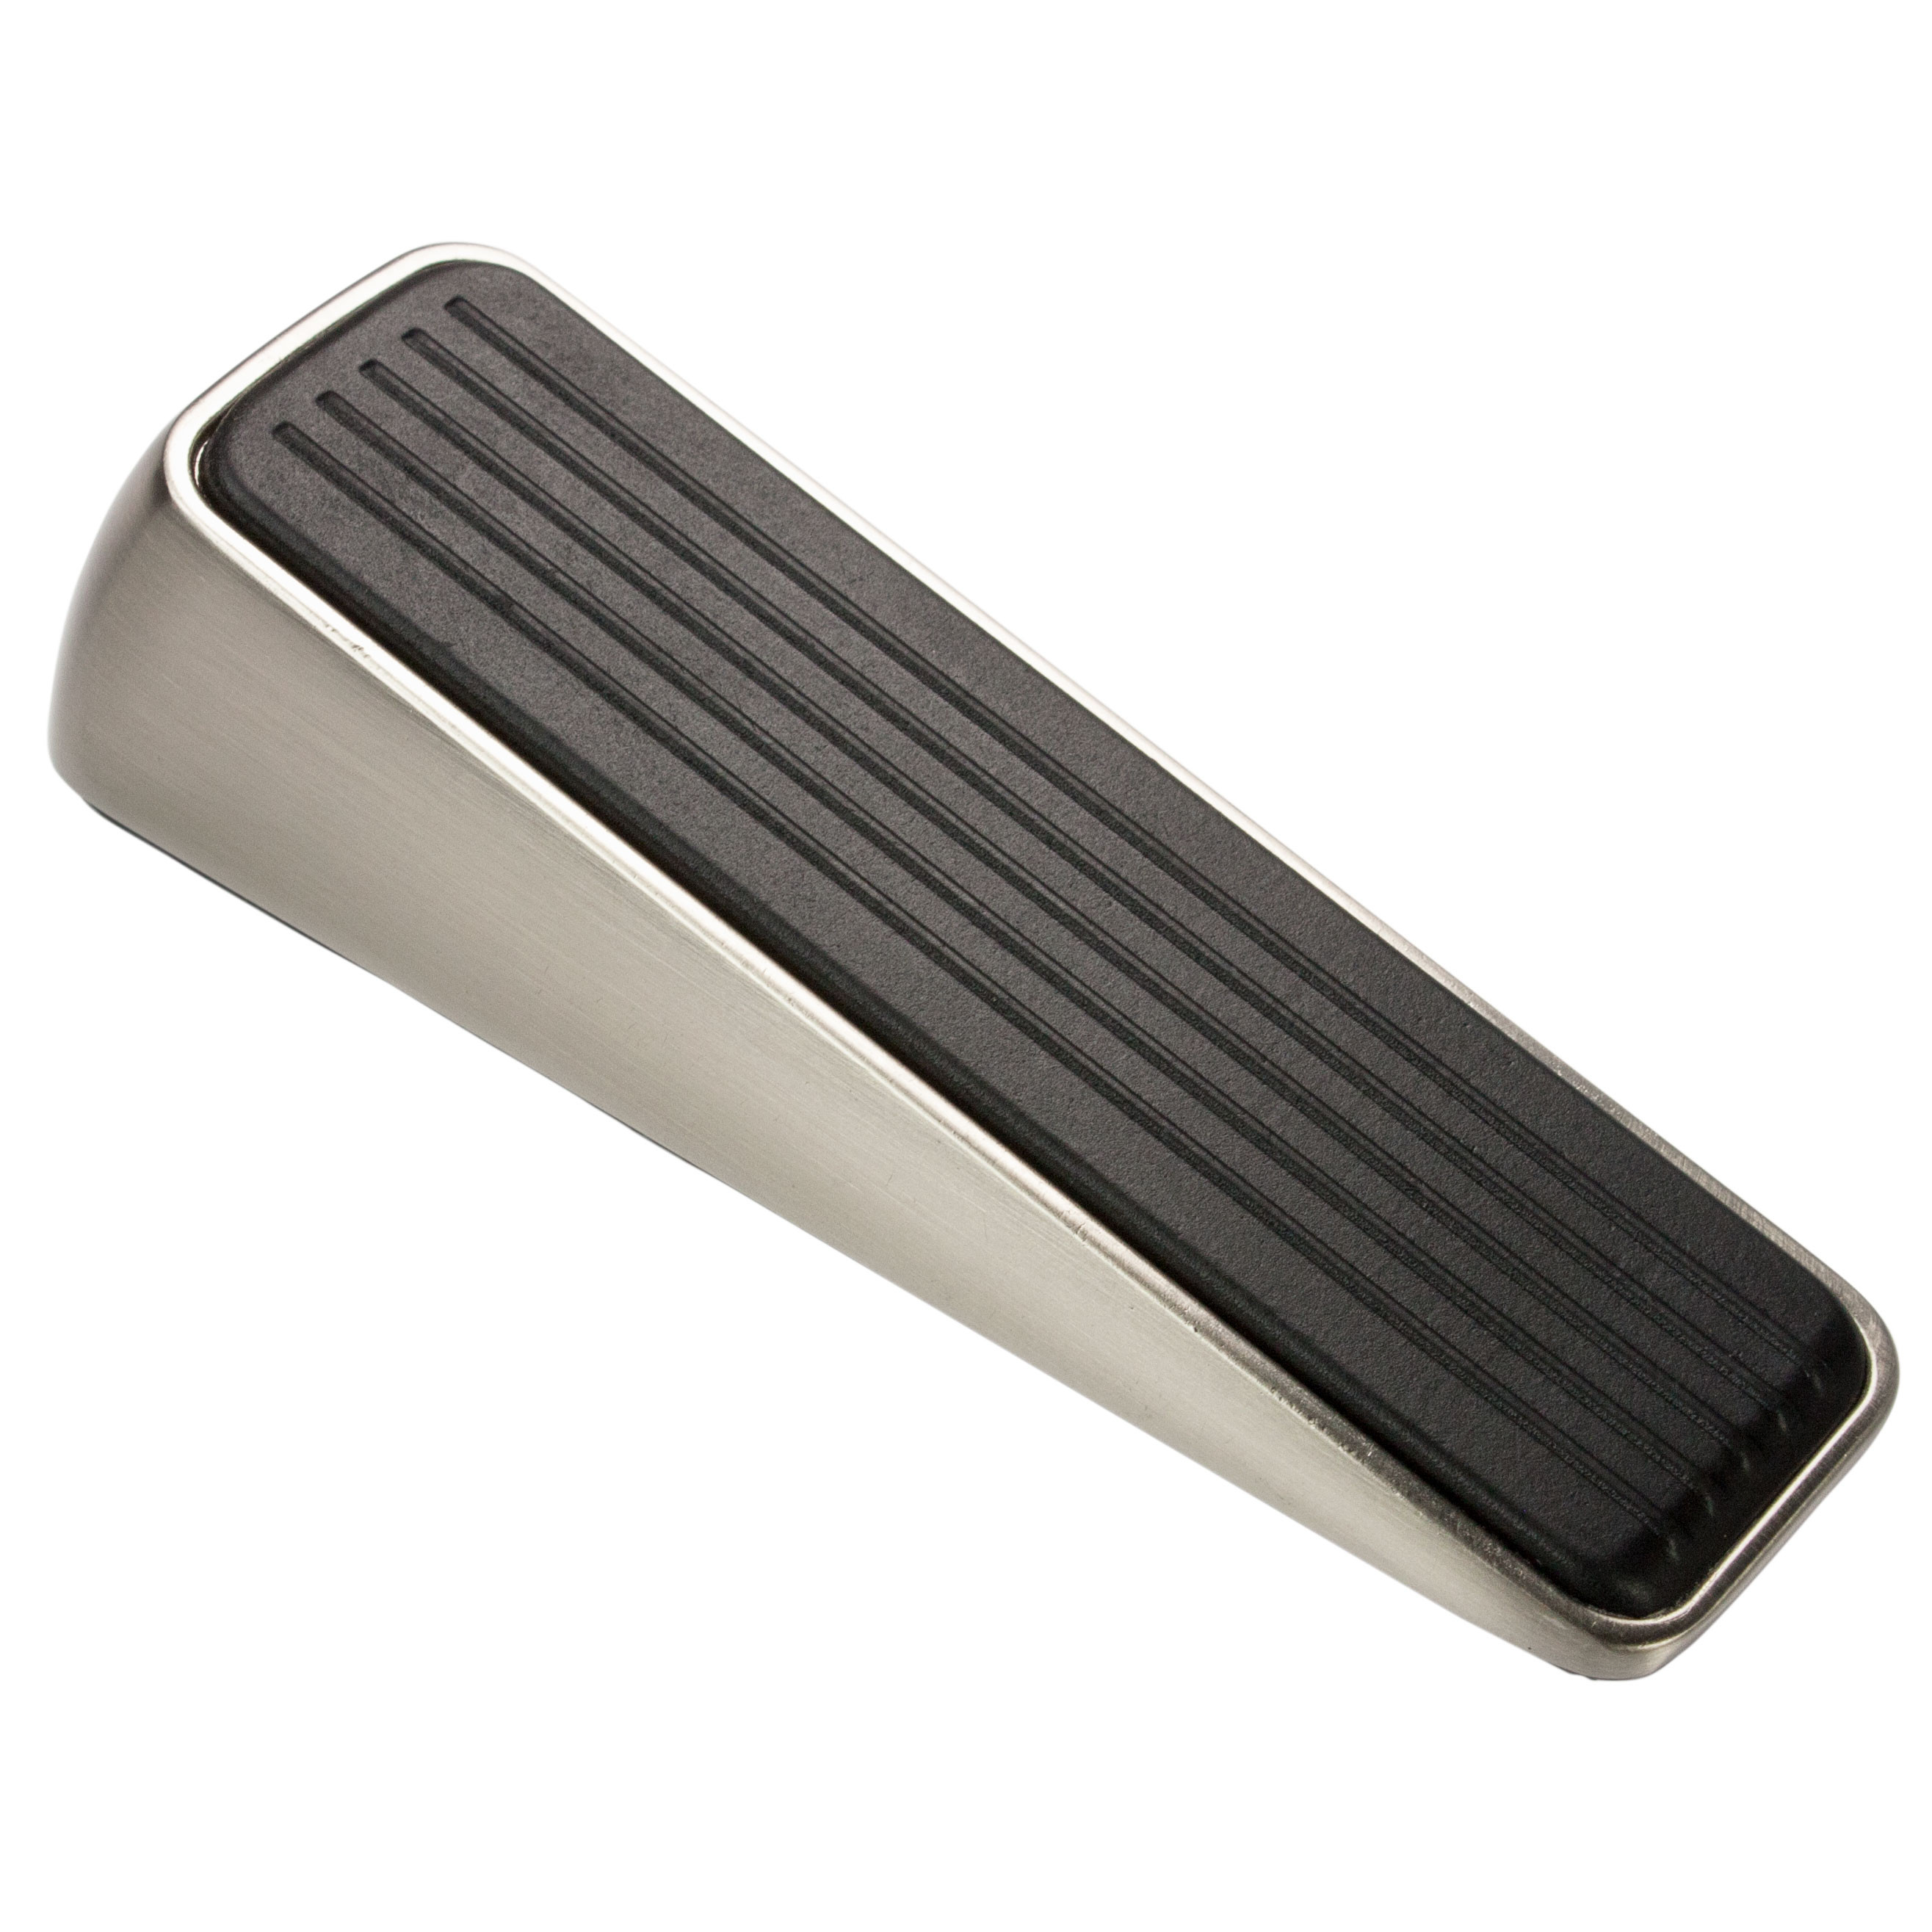 ... Inch Contemporary Wedge Door Stop. Hover To Zoom